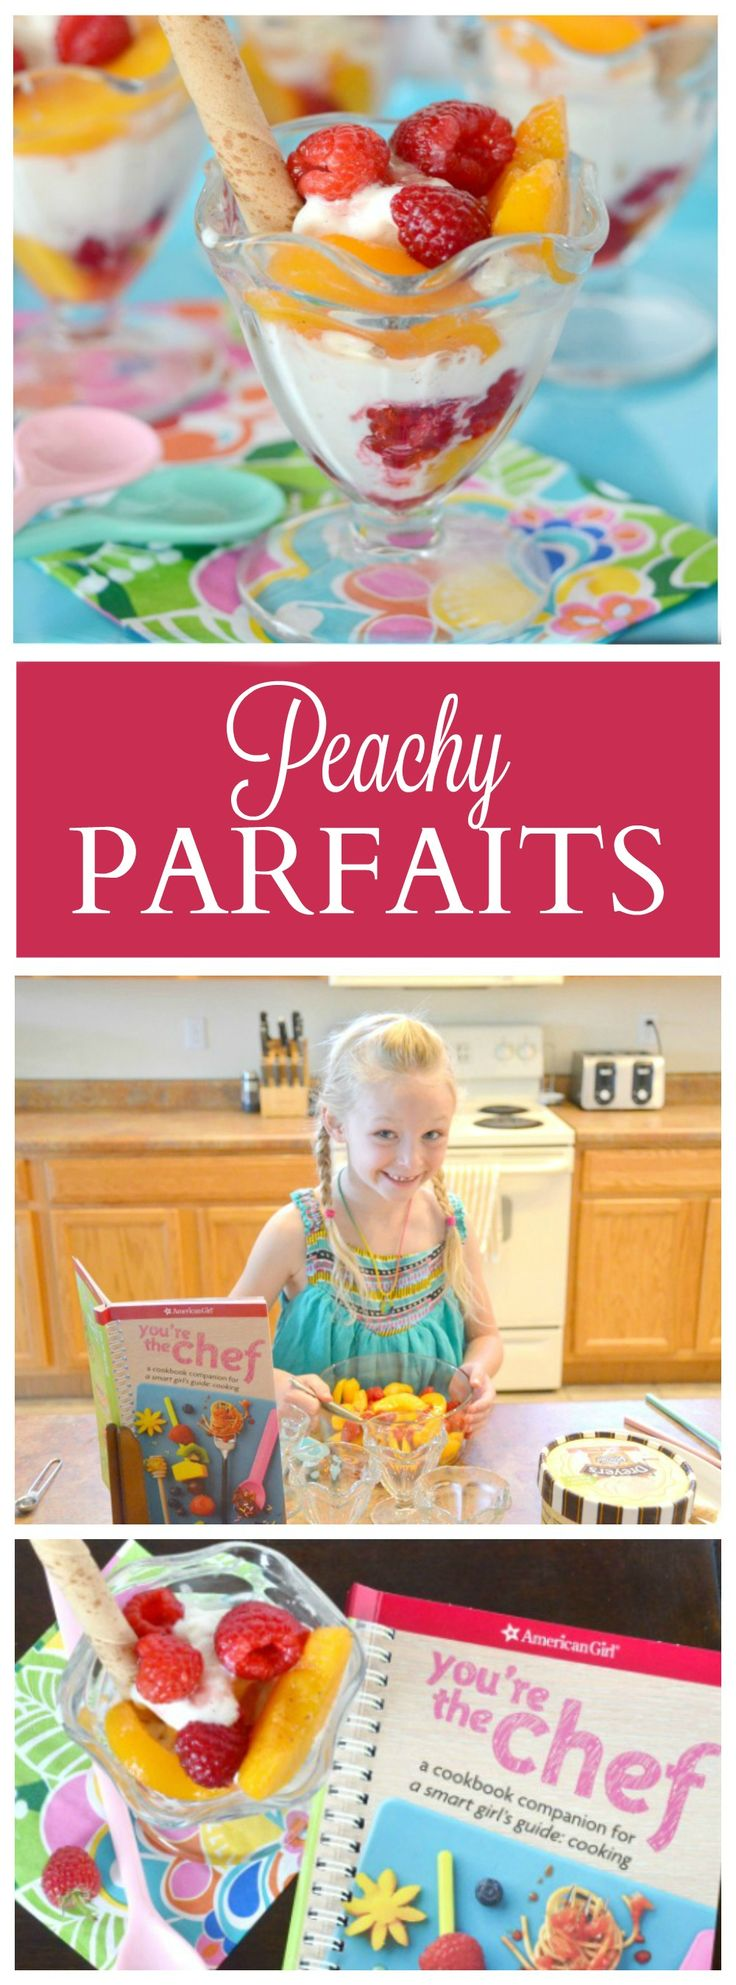 Kids in the Kitchen: American Girl Cookbooks + Parfait Recipe | The Shopping Mama